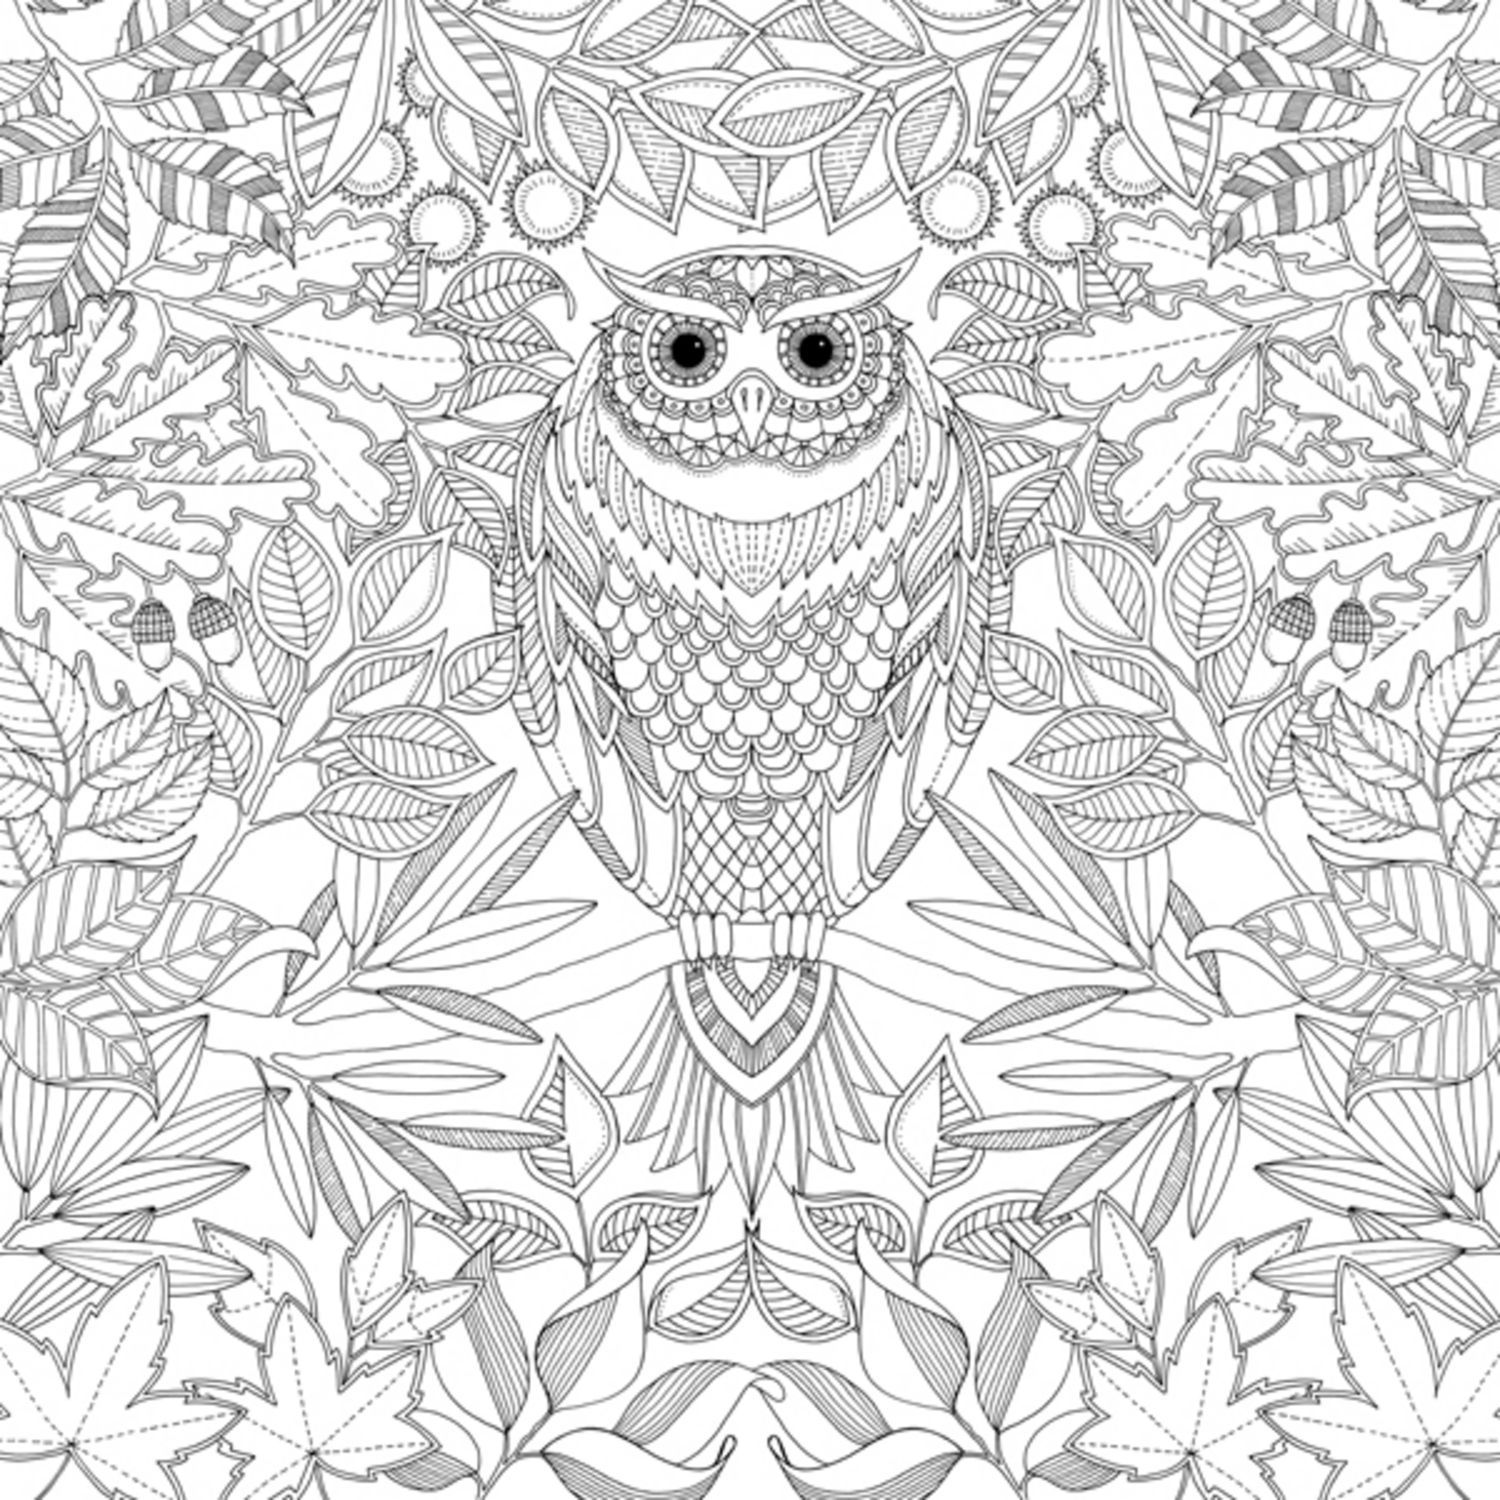 colouring book download pdf google search - Kids Coloring Book Pdf